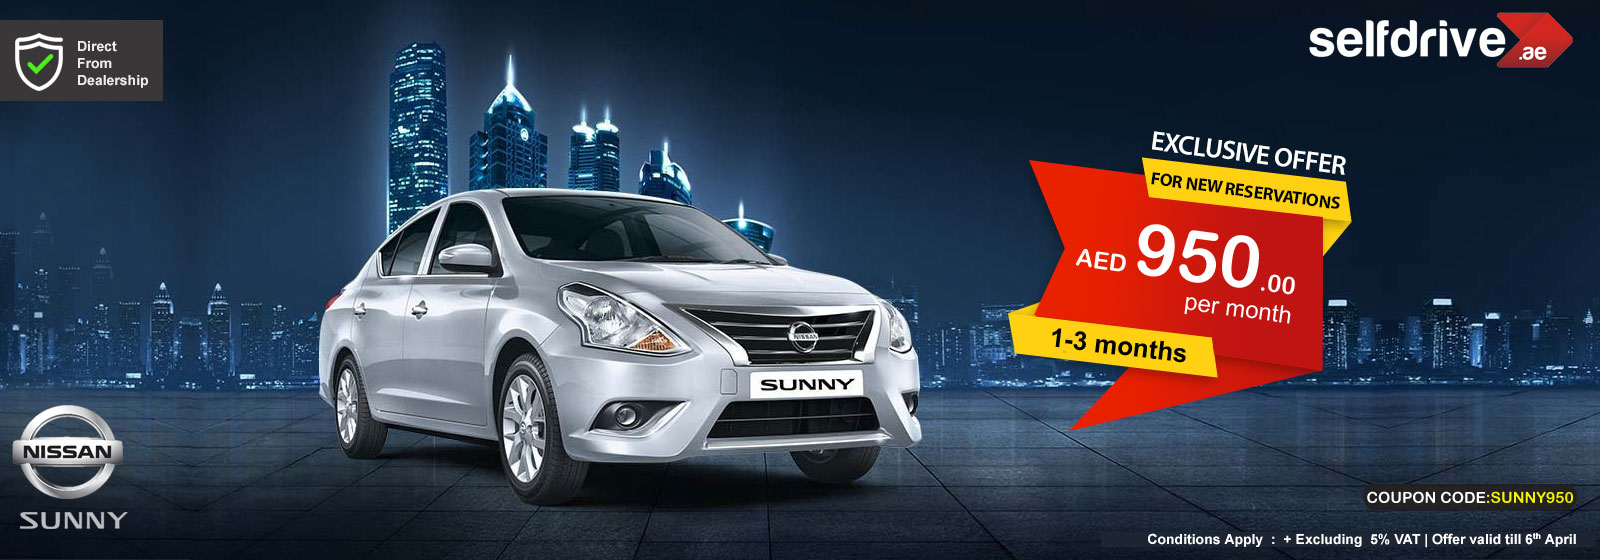 Rent Nissan Sunny exclusive offer for 1-3 months